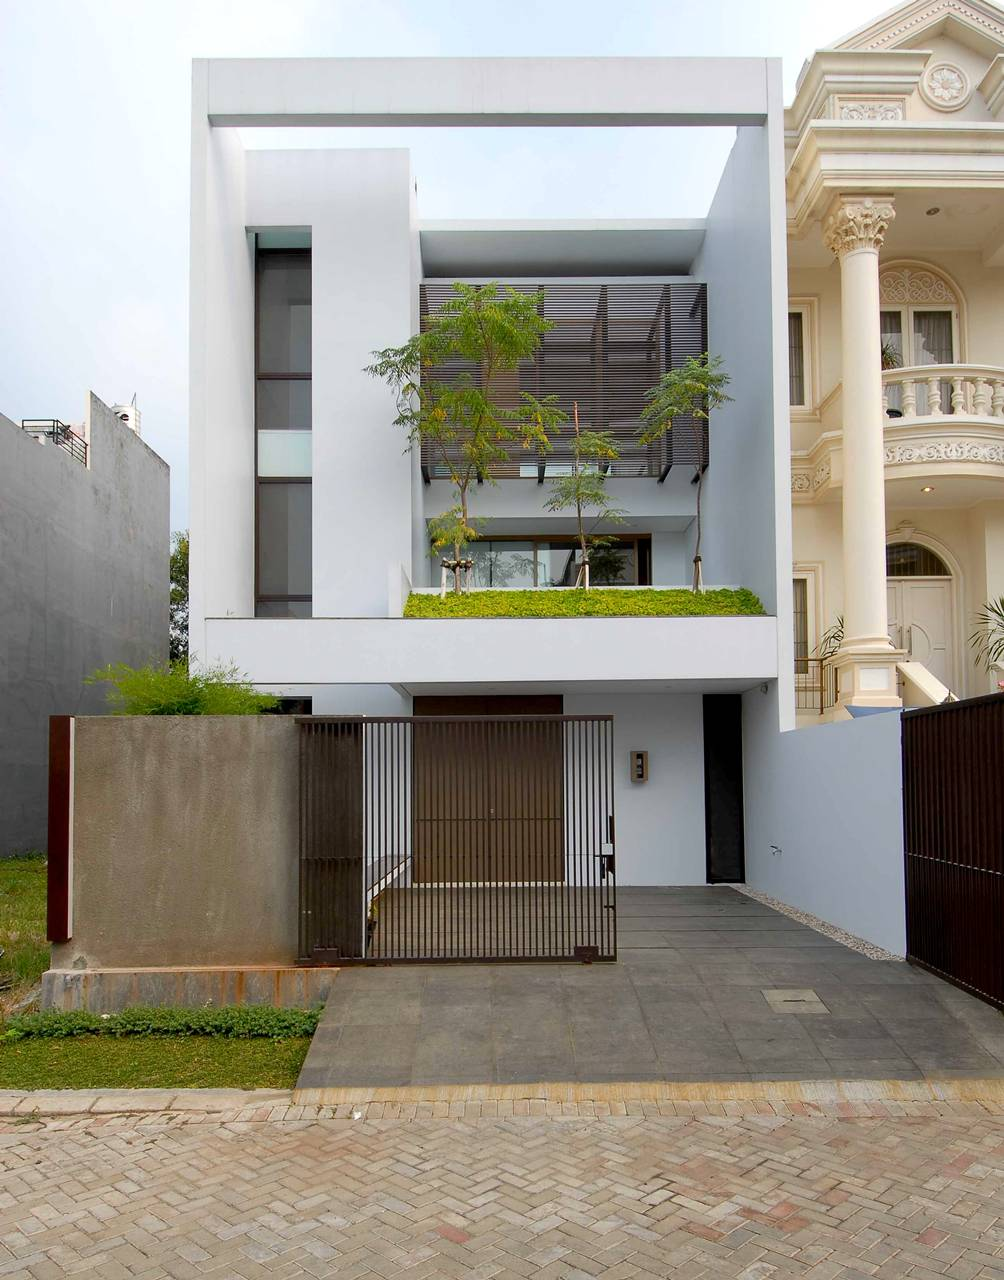 Less is more minimalism amid affluence in north jakarta for Urban minimalist house